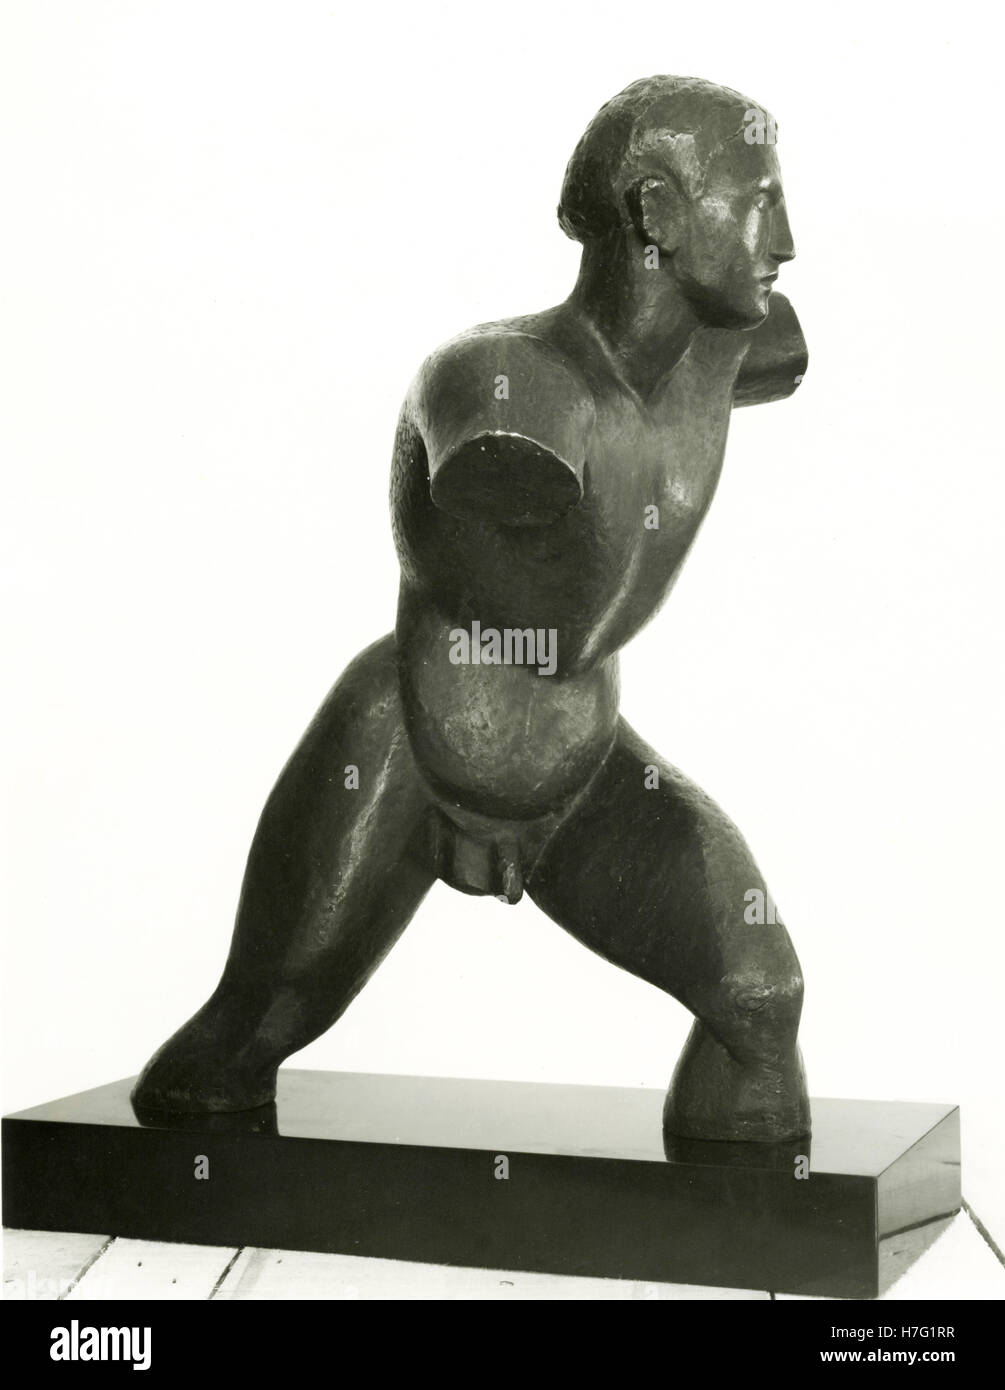 Statue of an athlet, by Raymond Duchamp Villon, France - Stock Image